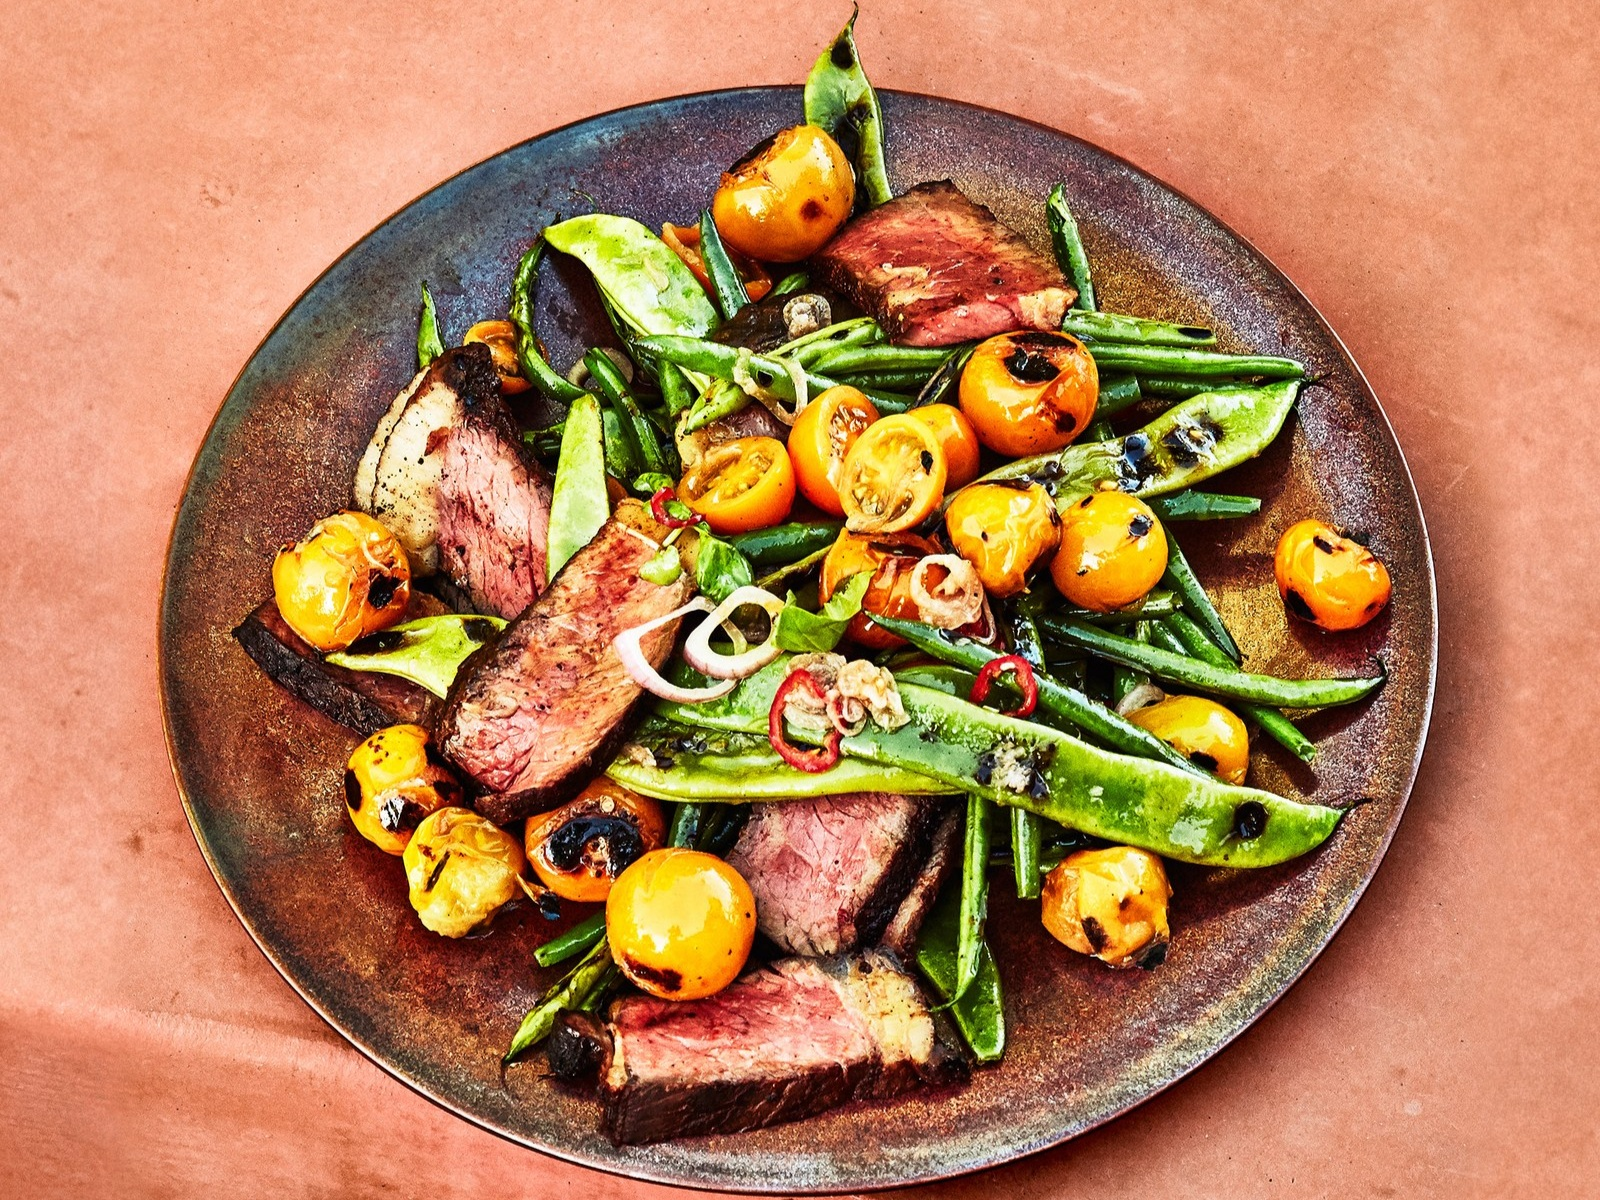 strip-steak-with-blistered-beans-and-tomatoes.jpg